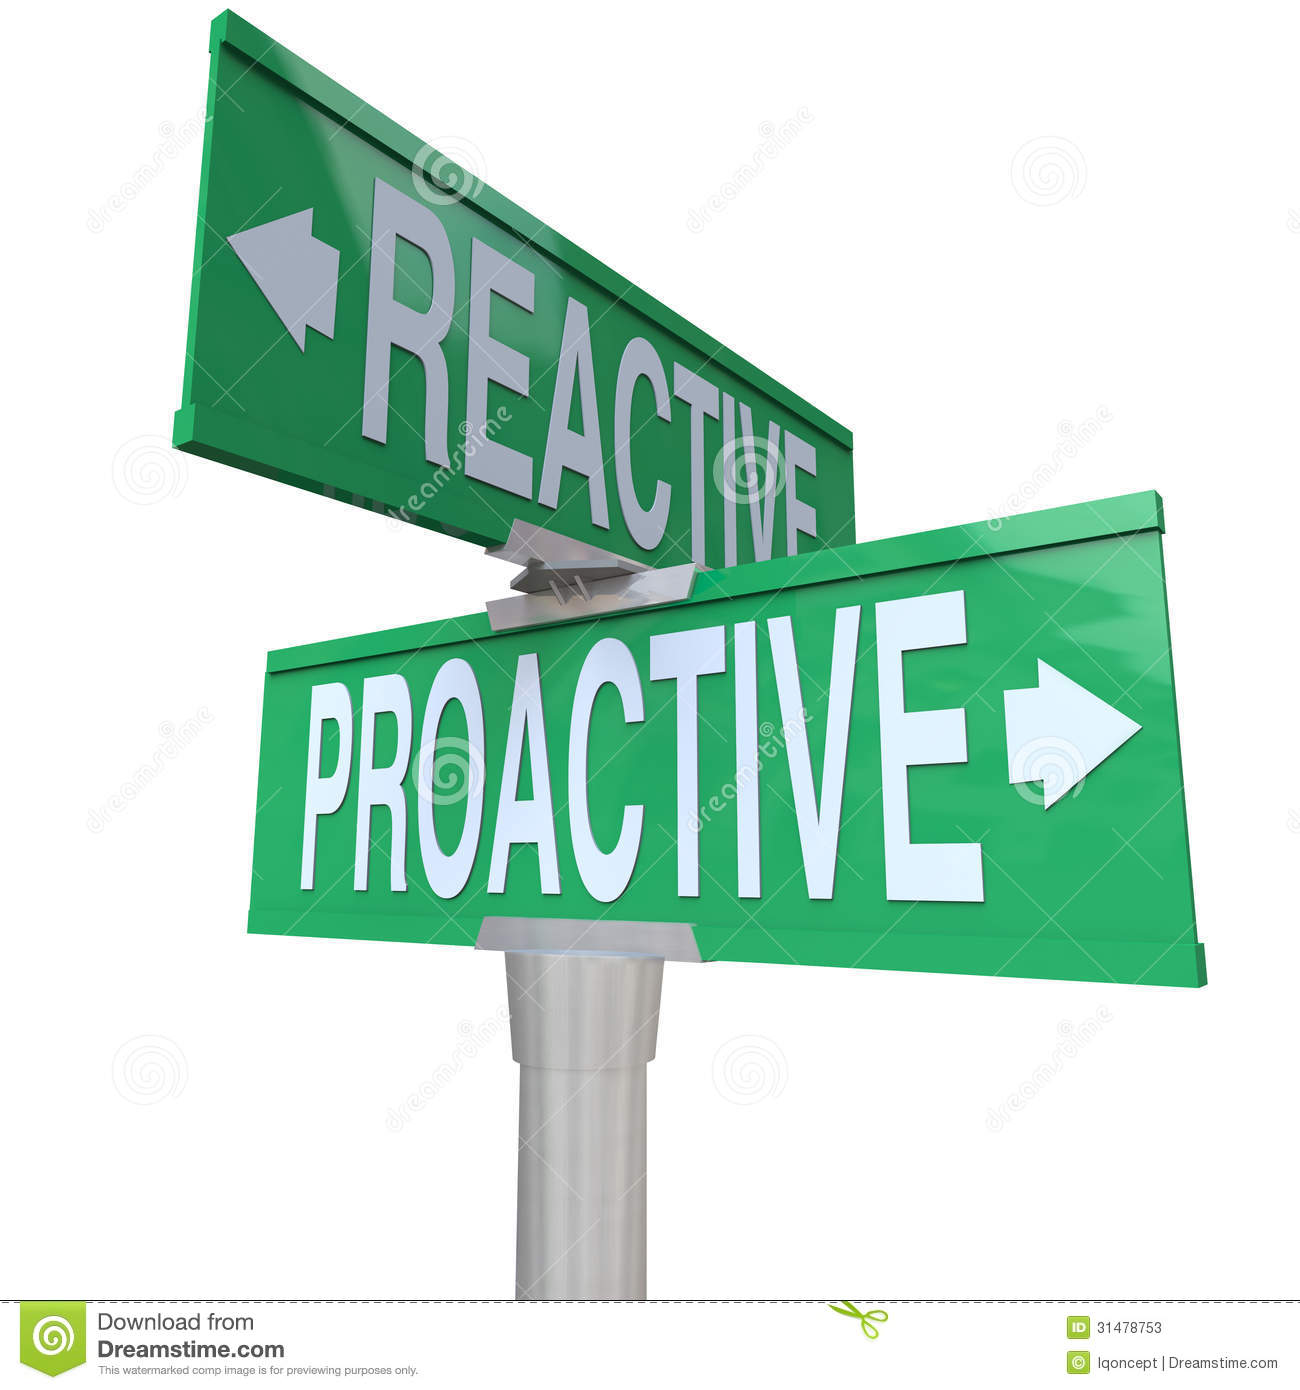 reactive vs proactive Proactive - anticipating events such as problems, markets, trends, and consumer demands and planning ahead for them reactive - reacting to events when they occur with little to no.